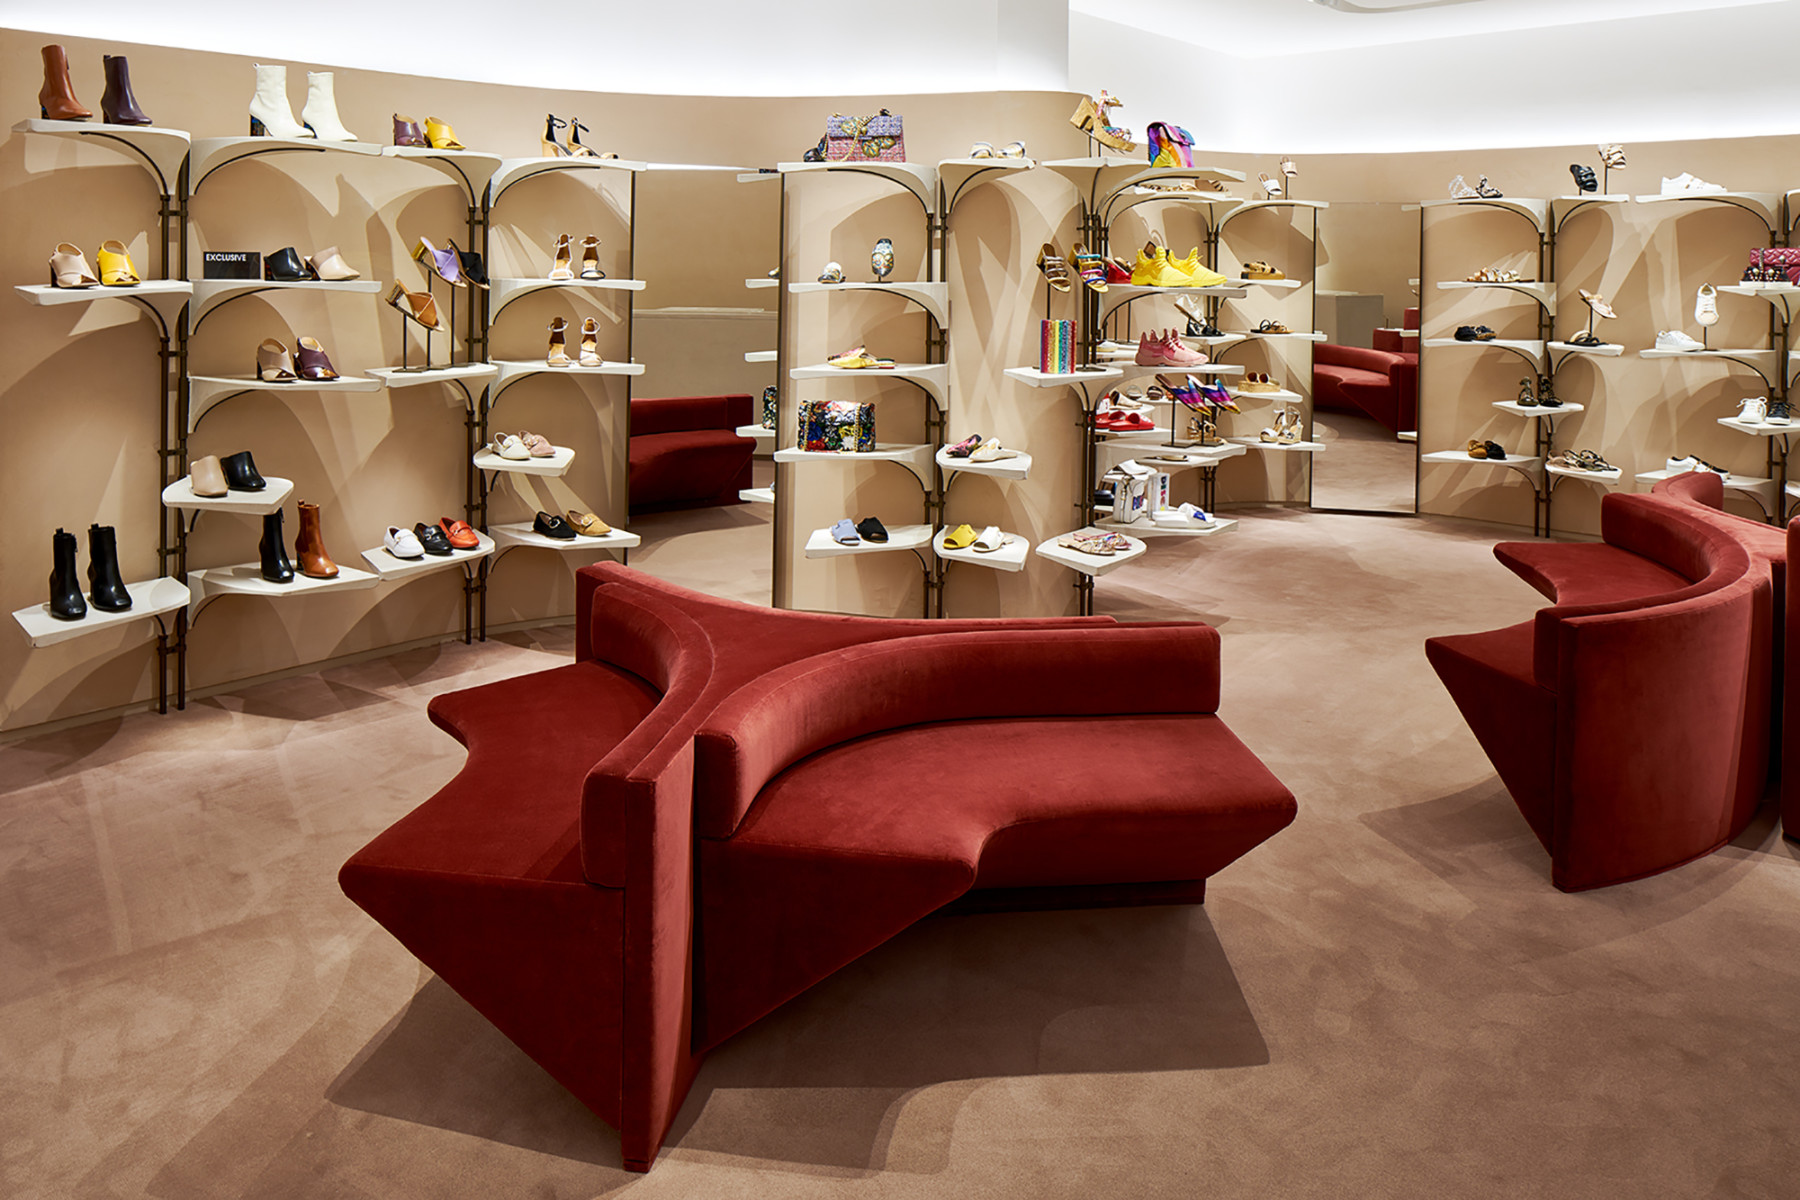 Jamie-Fobert-Architects-Retail-Interiors-Kurt-Geiger-Selfridges-Design-Concept